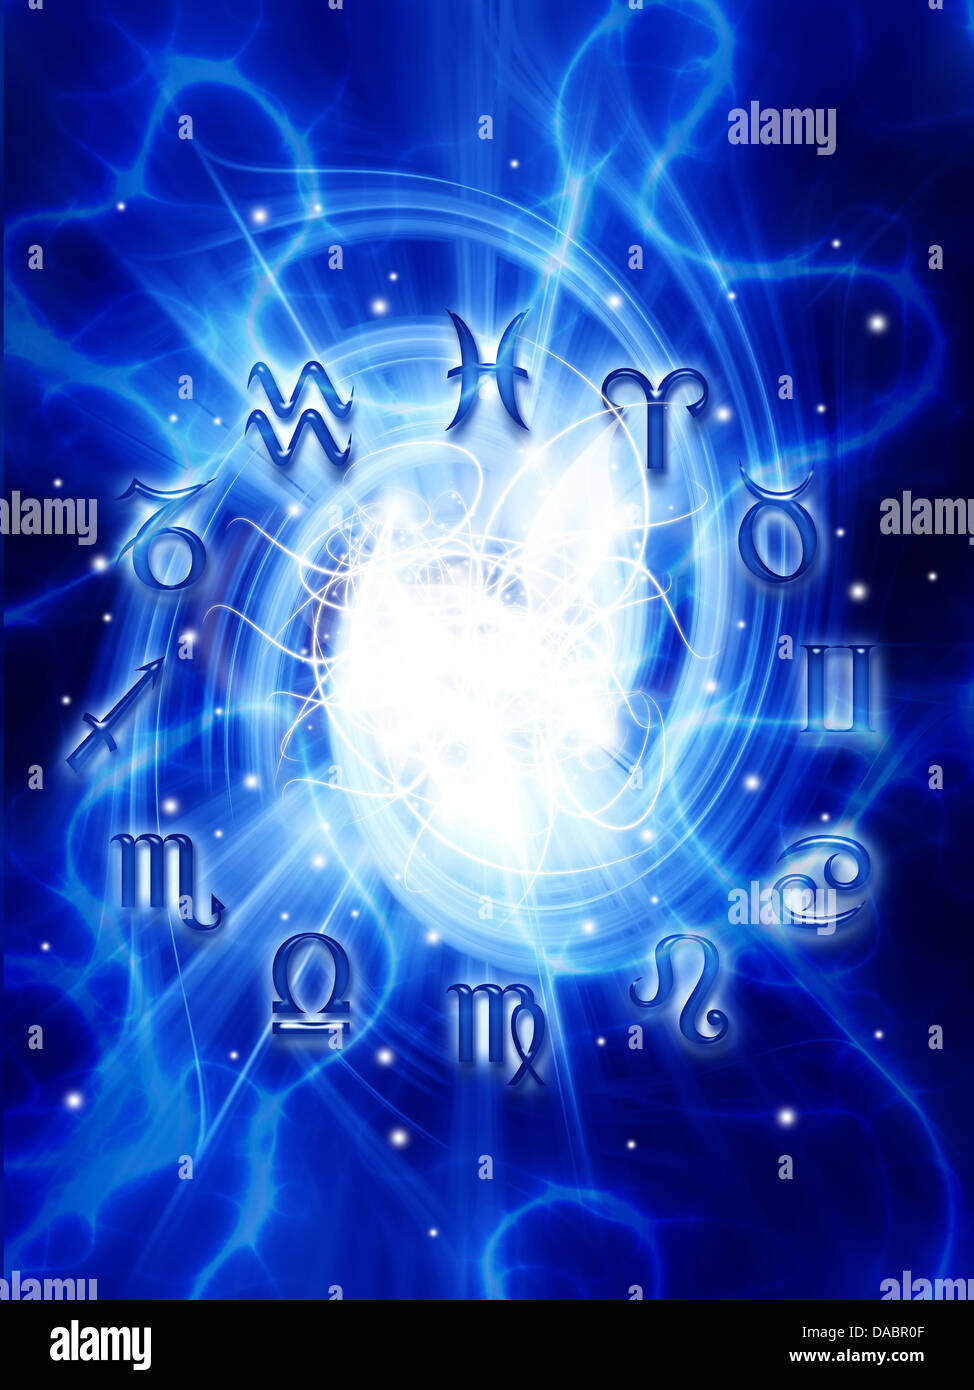 astrology and zodiac signs - Stock Image